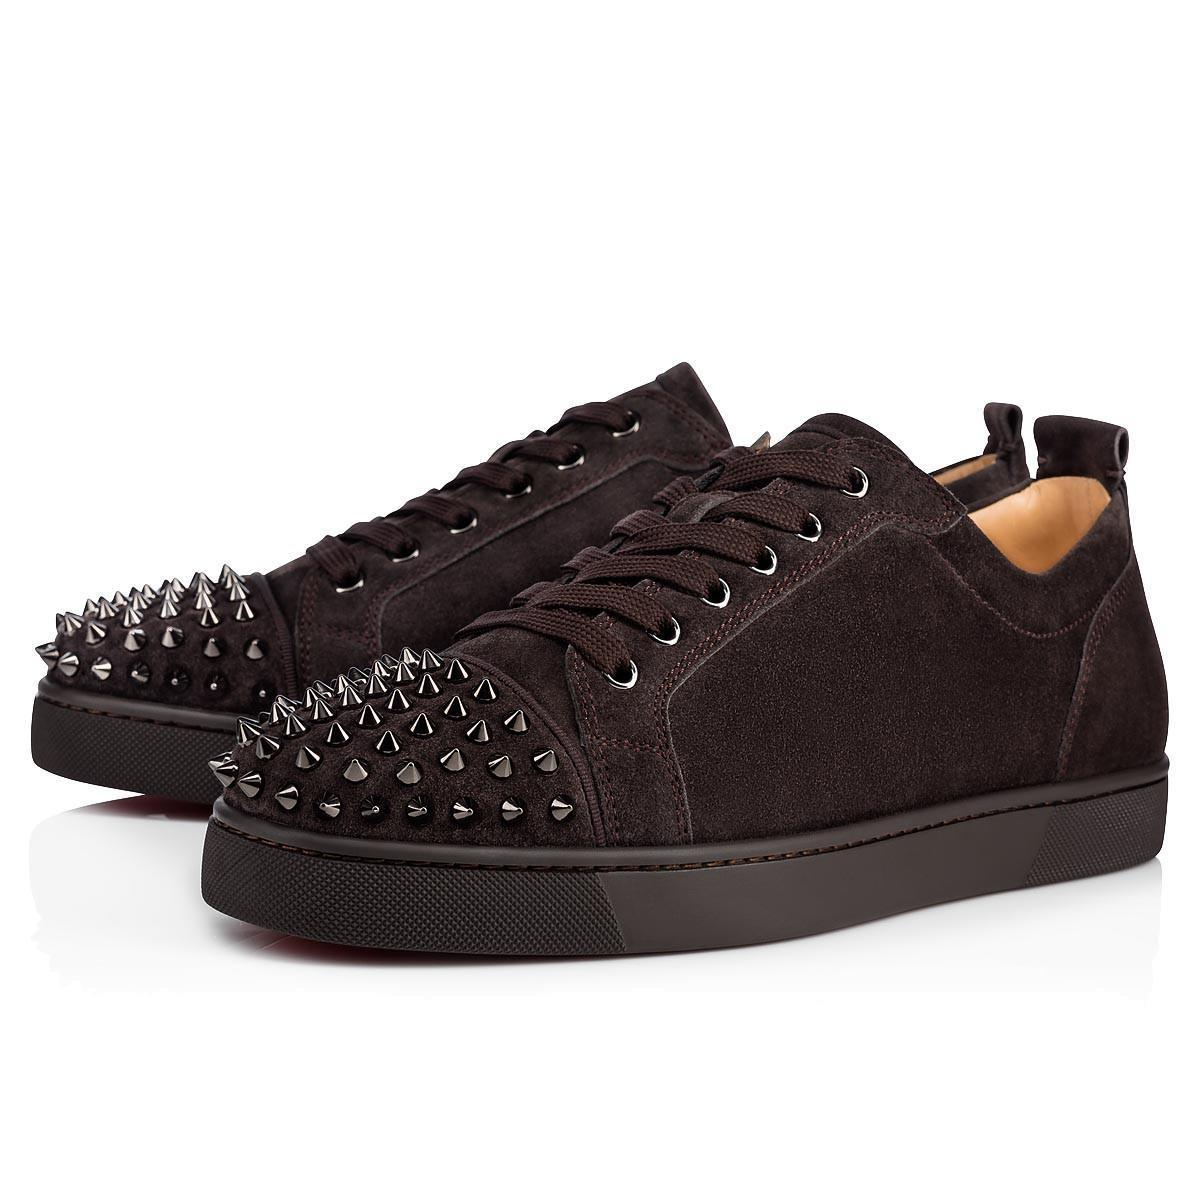 Designs Shoes Spike junior calf Low Cut Mix 20 Red Bottom Sneaker Luxury Party Wedding Shoes Genuine Leather Spikes Lace-up Casual ShoeL02